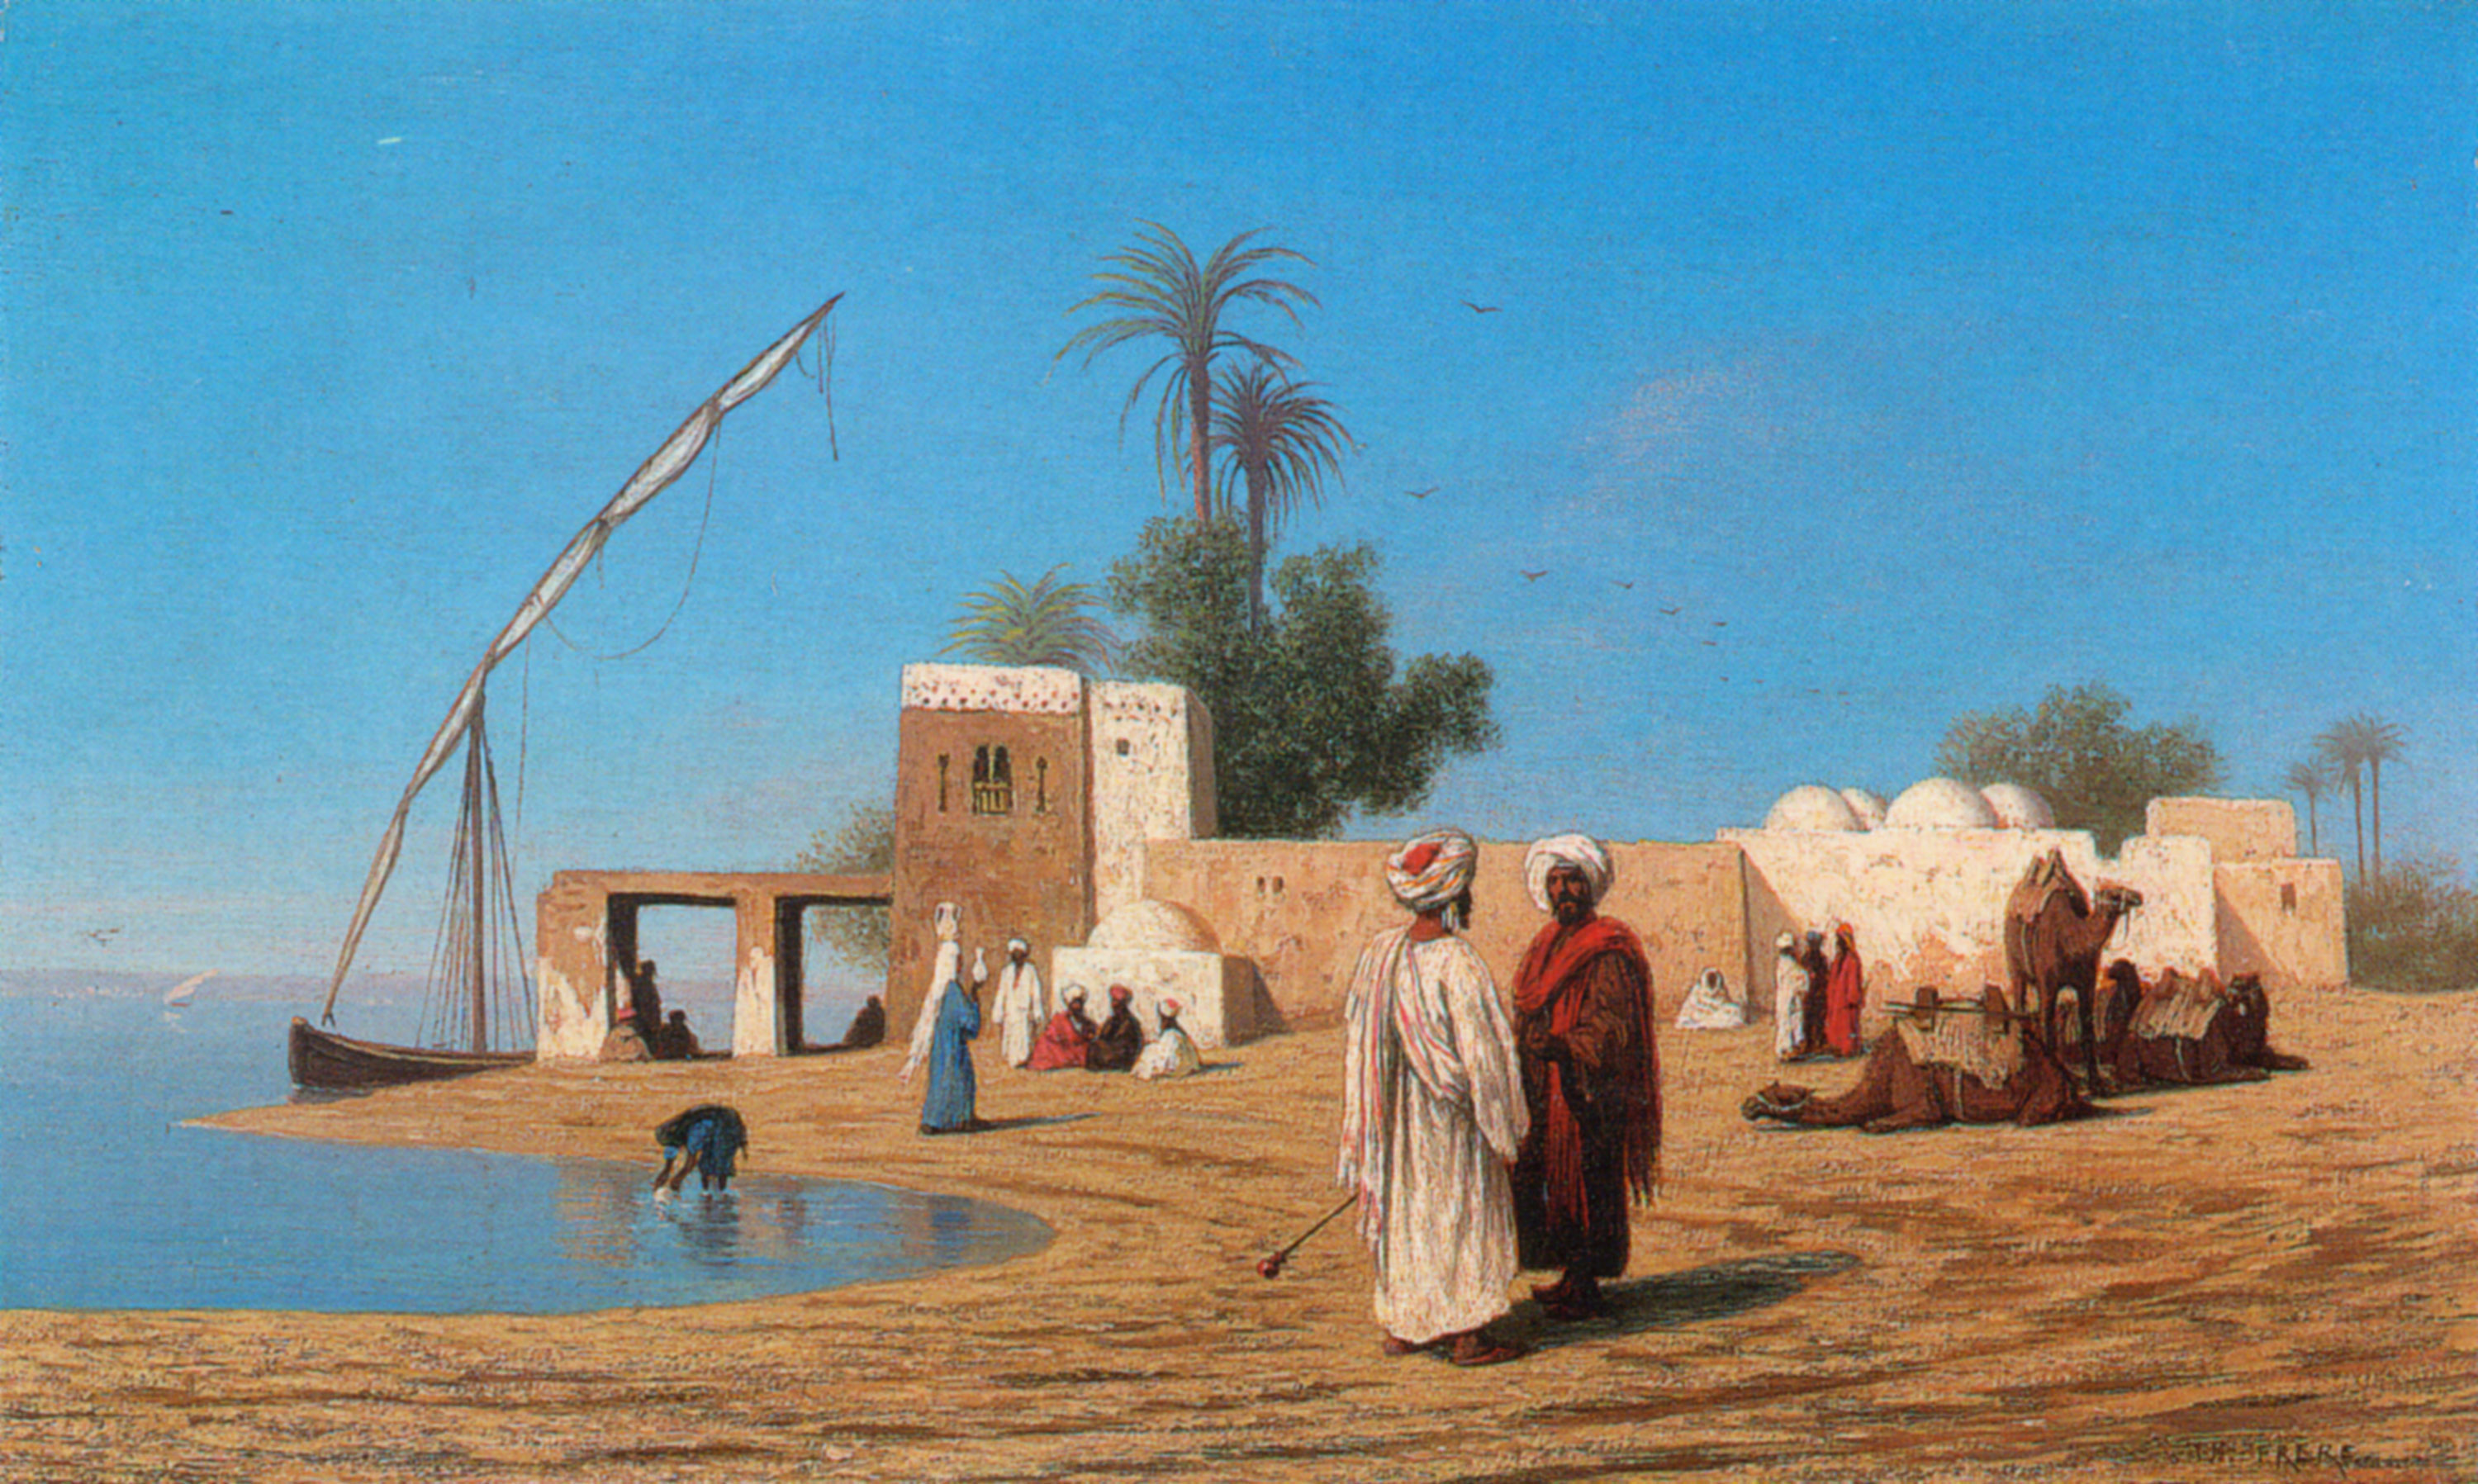 A Village on the Shores of the Nile - High Egypte ::Charles Theodore Frere - scenes of Oriental life (Orientalism) in art and painting ôîòî